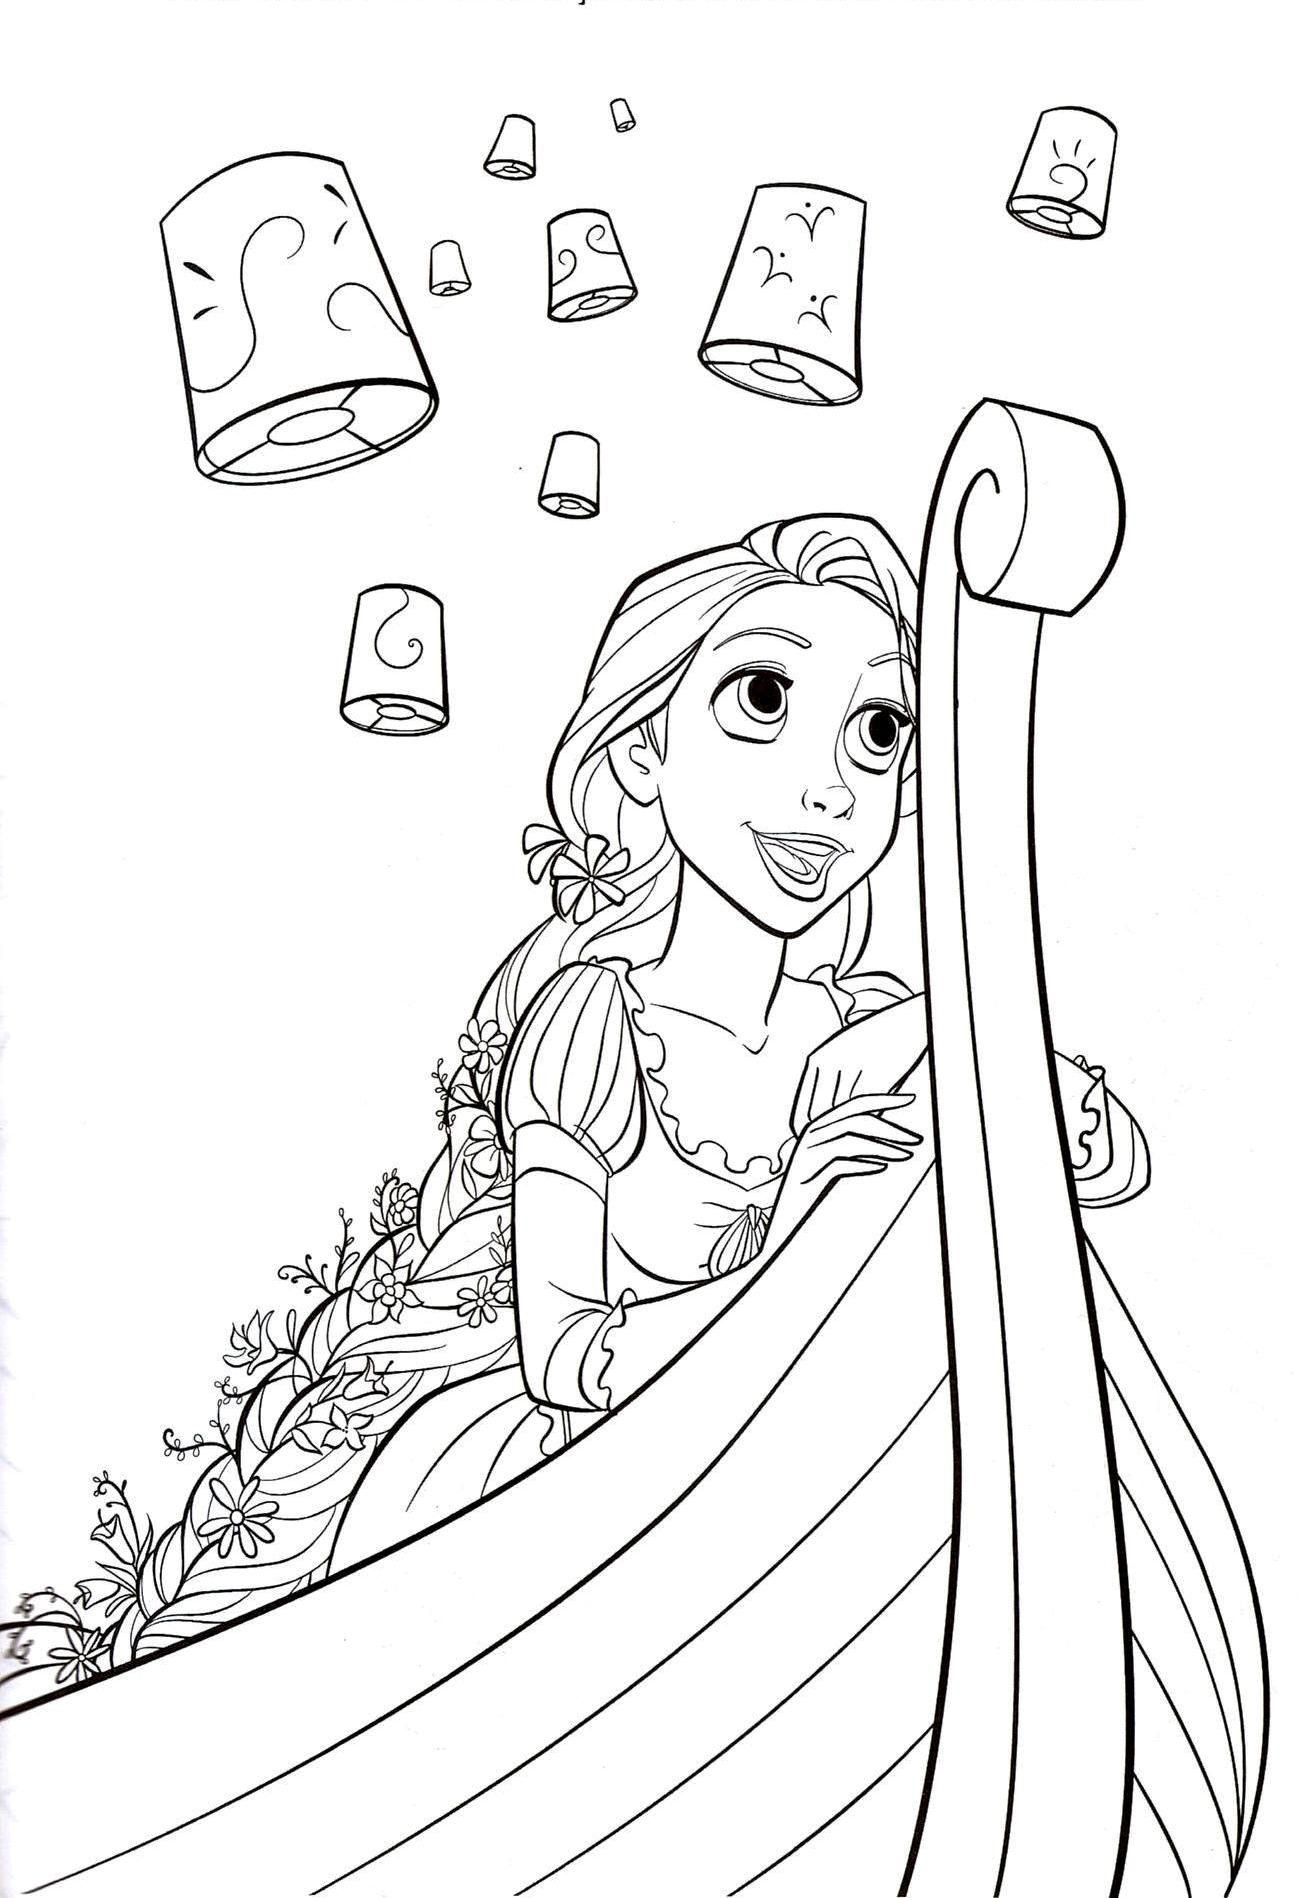 disney rapunzel coloring pages free printable disney princess tangled rapunzel colouring pages coloring page kids - Tangled Coloring Pages Printable